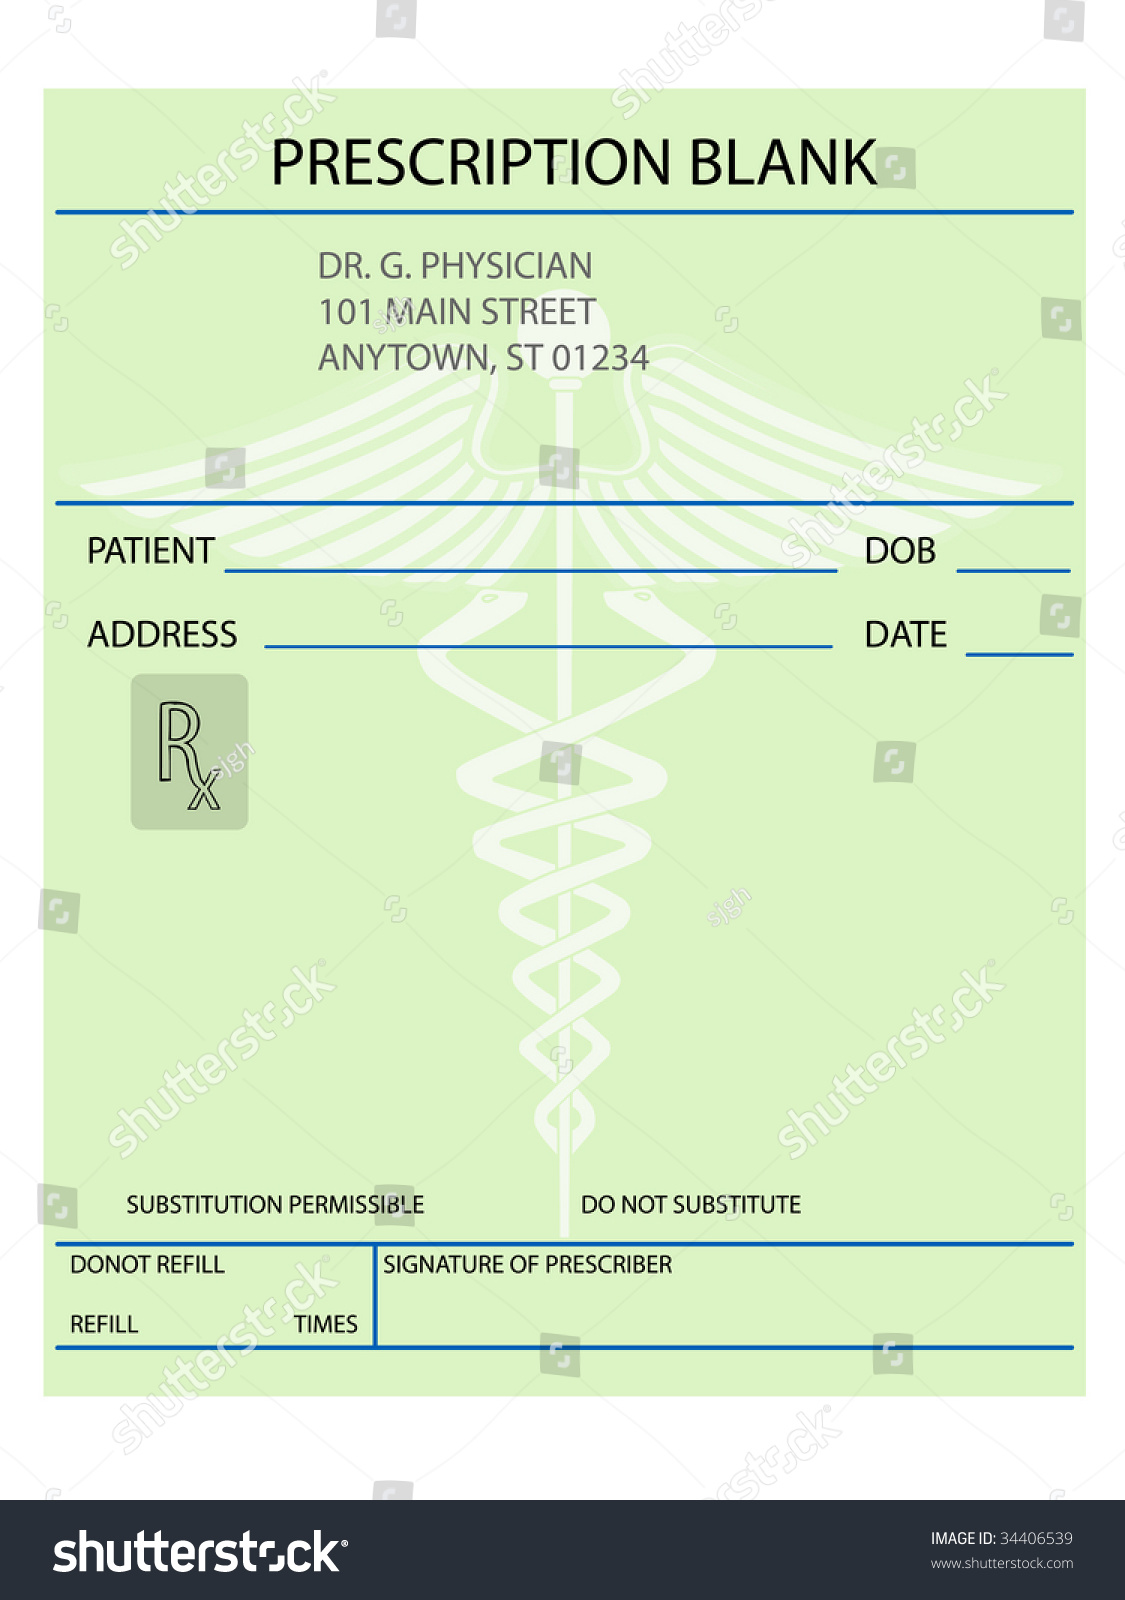 Illustration Of Prescription Form -Customize As Necessary - 34406539 ...